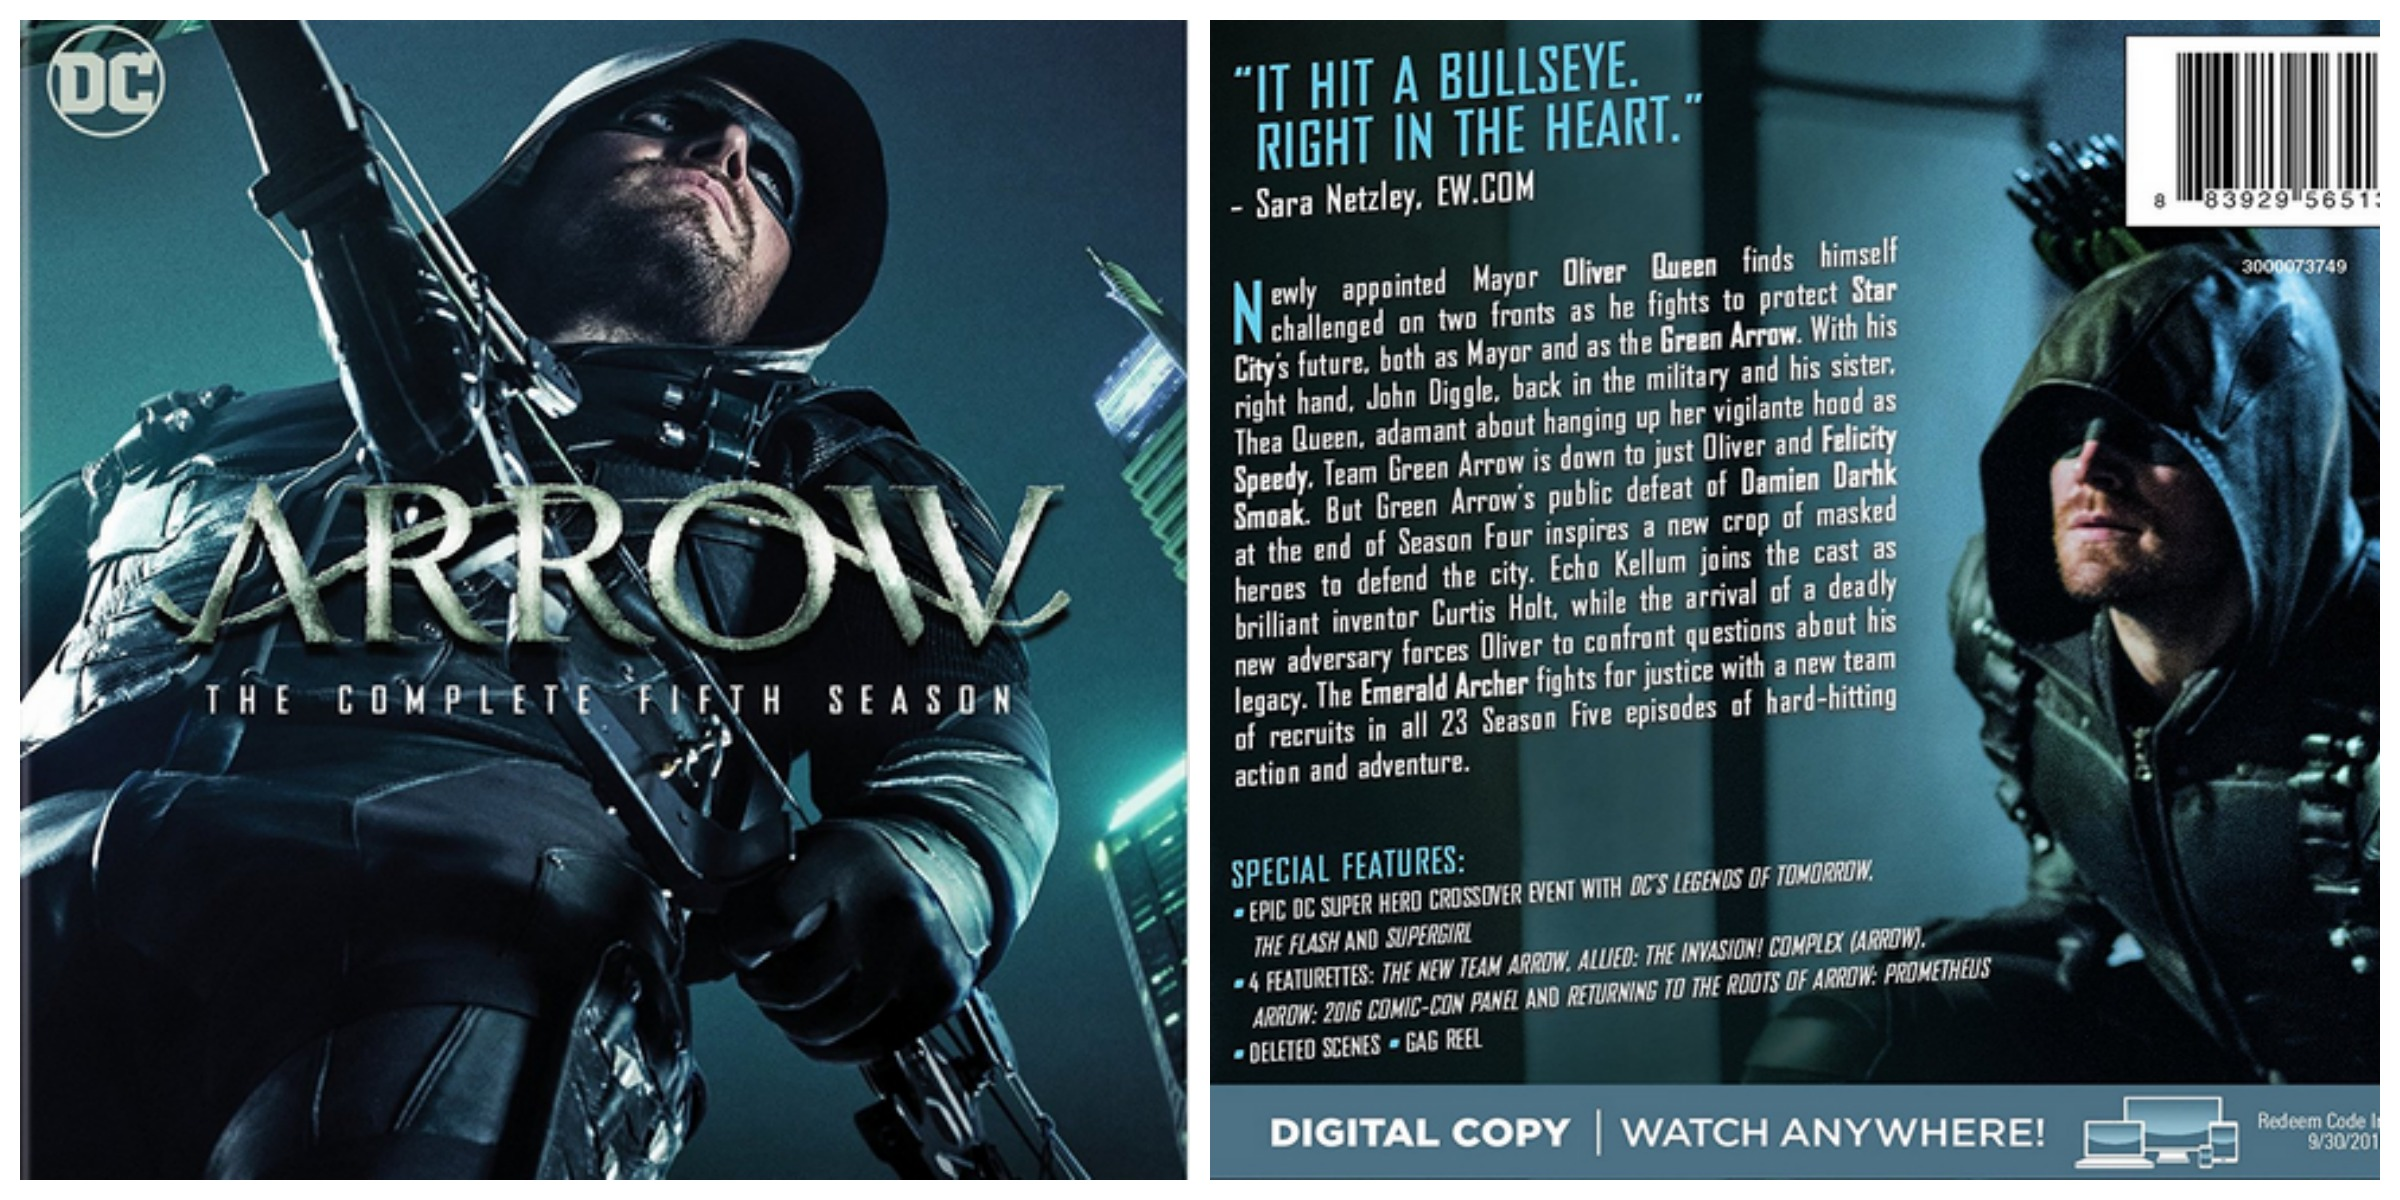 GIVEAWAY: Arrow: The Complete Fifth Season